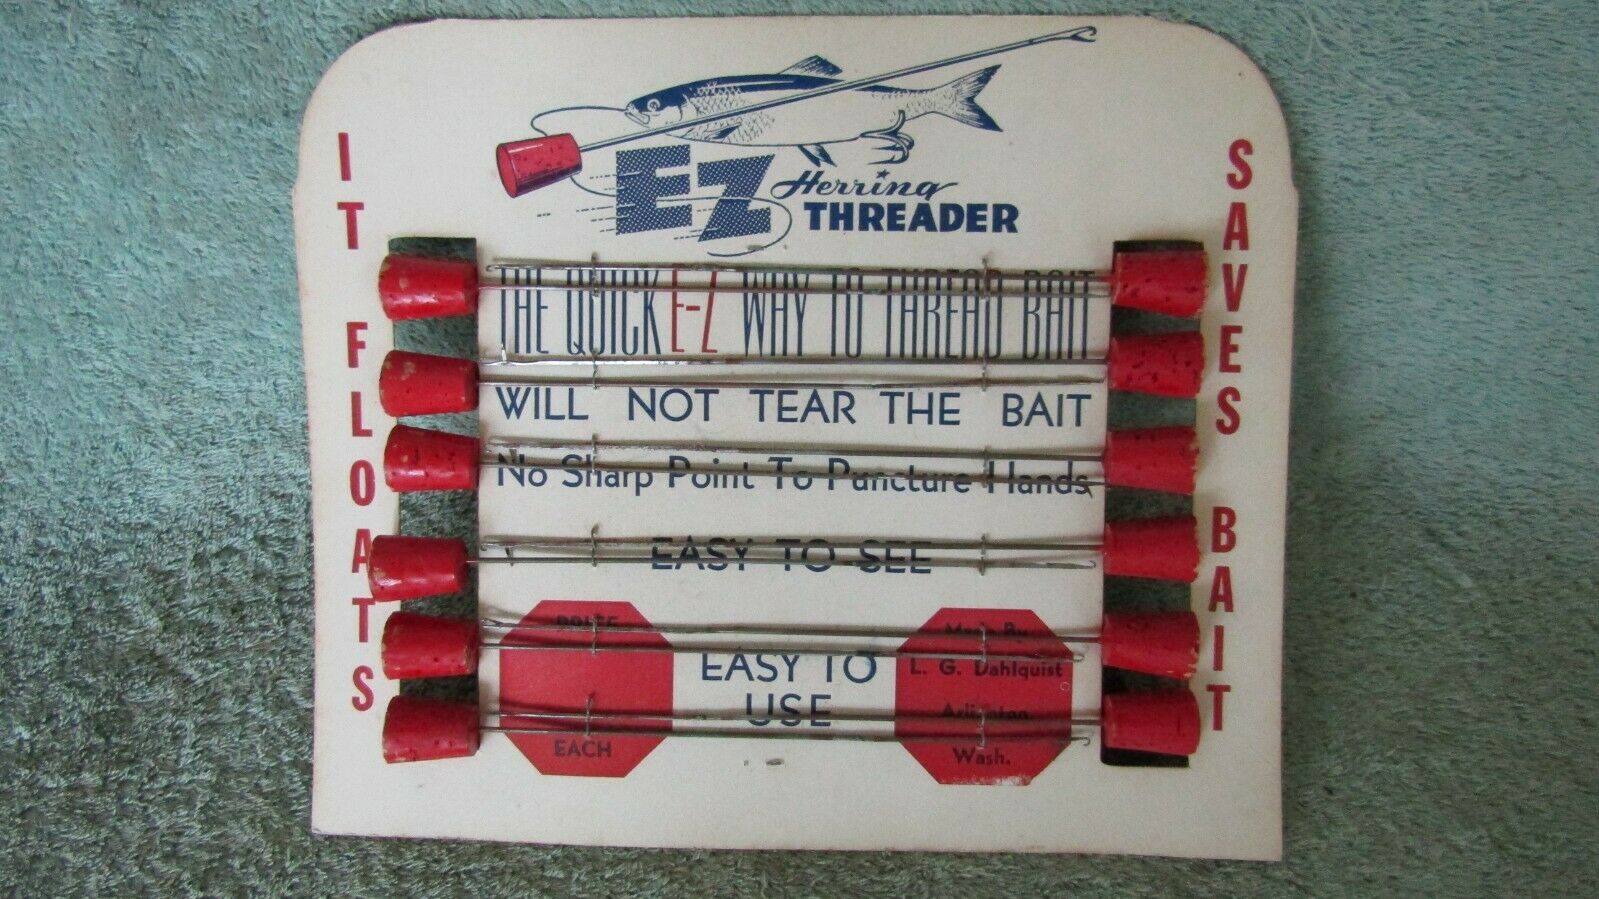 Vintage Fishing Counter Display EZ Herring Threader Fishing Sign Store Nice